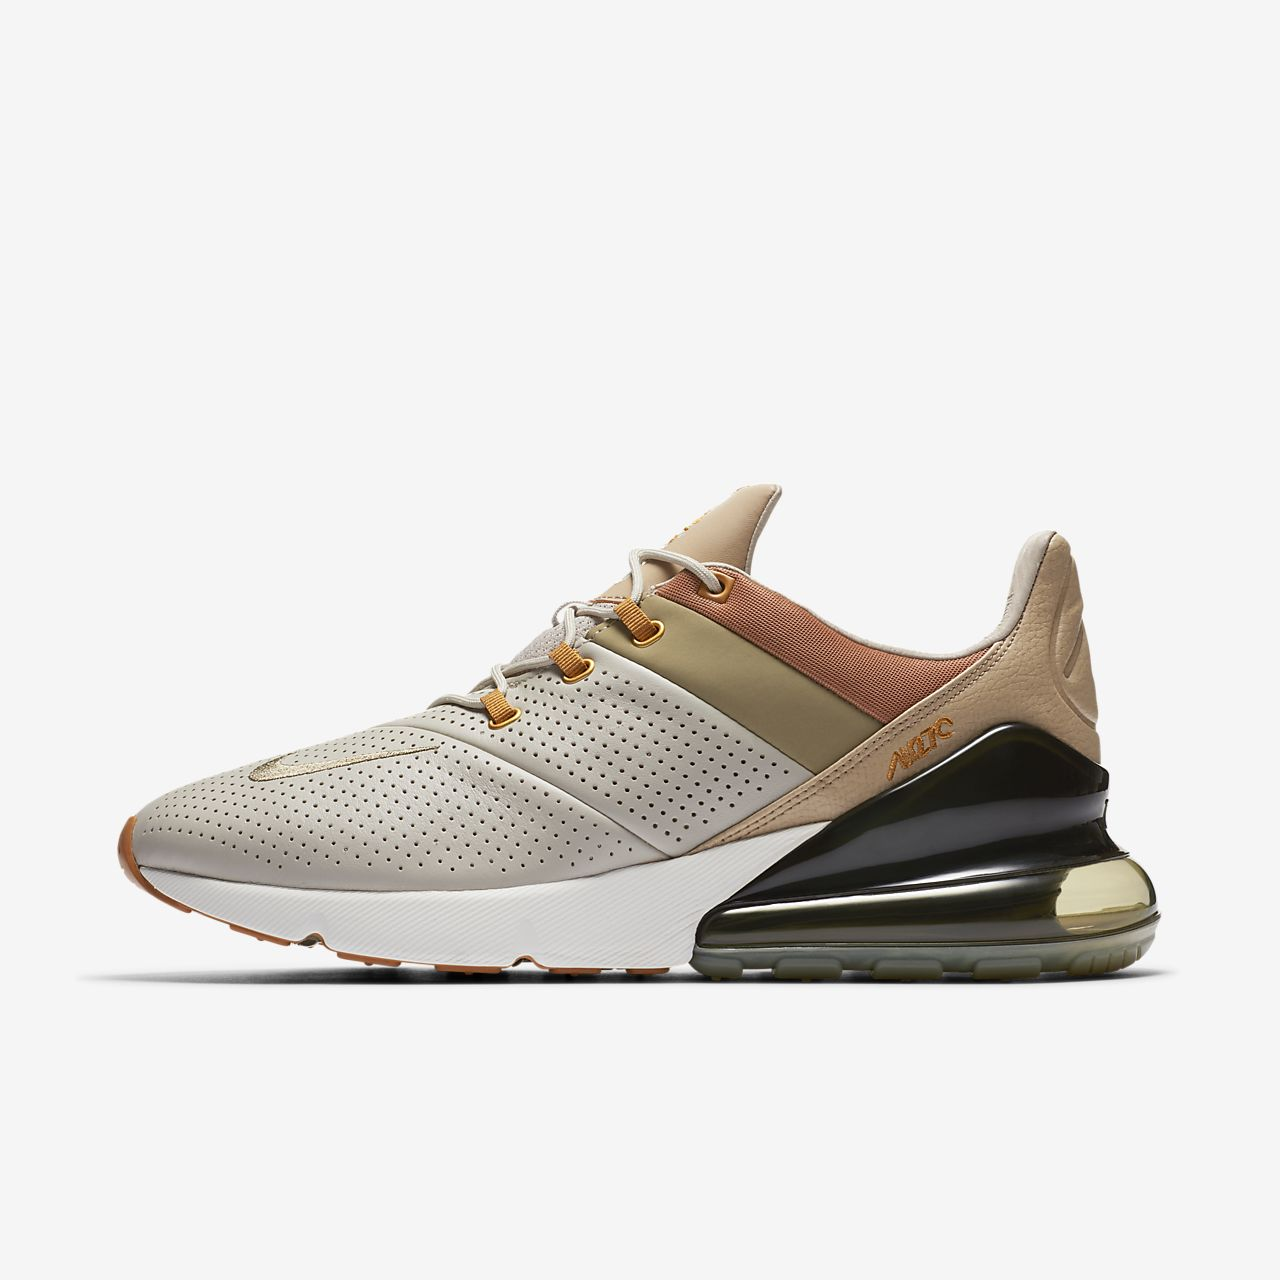 1051760a94bc Nike Air Max 270 Premium Men s Shoe. Nike.com BG